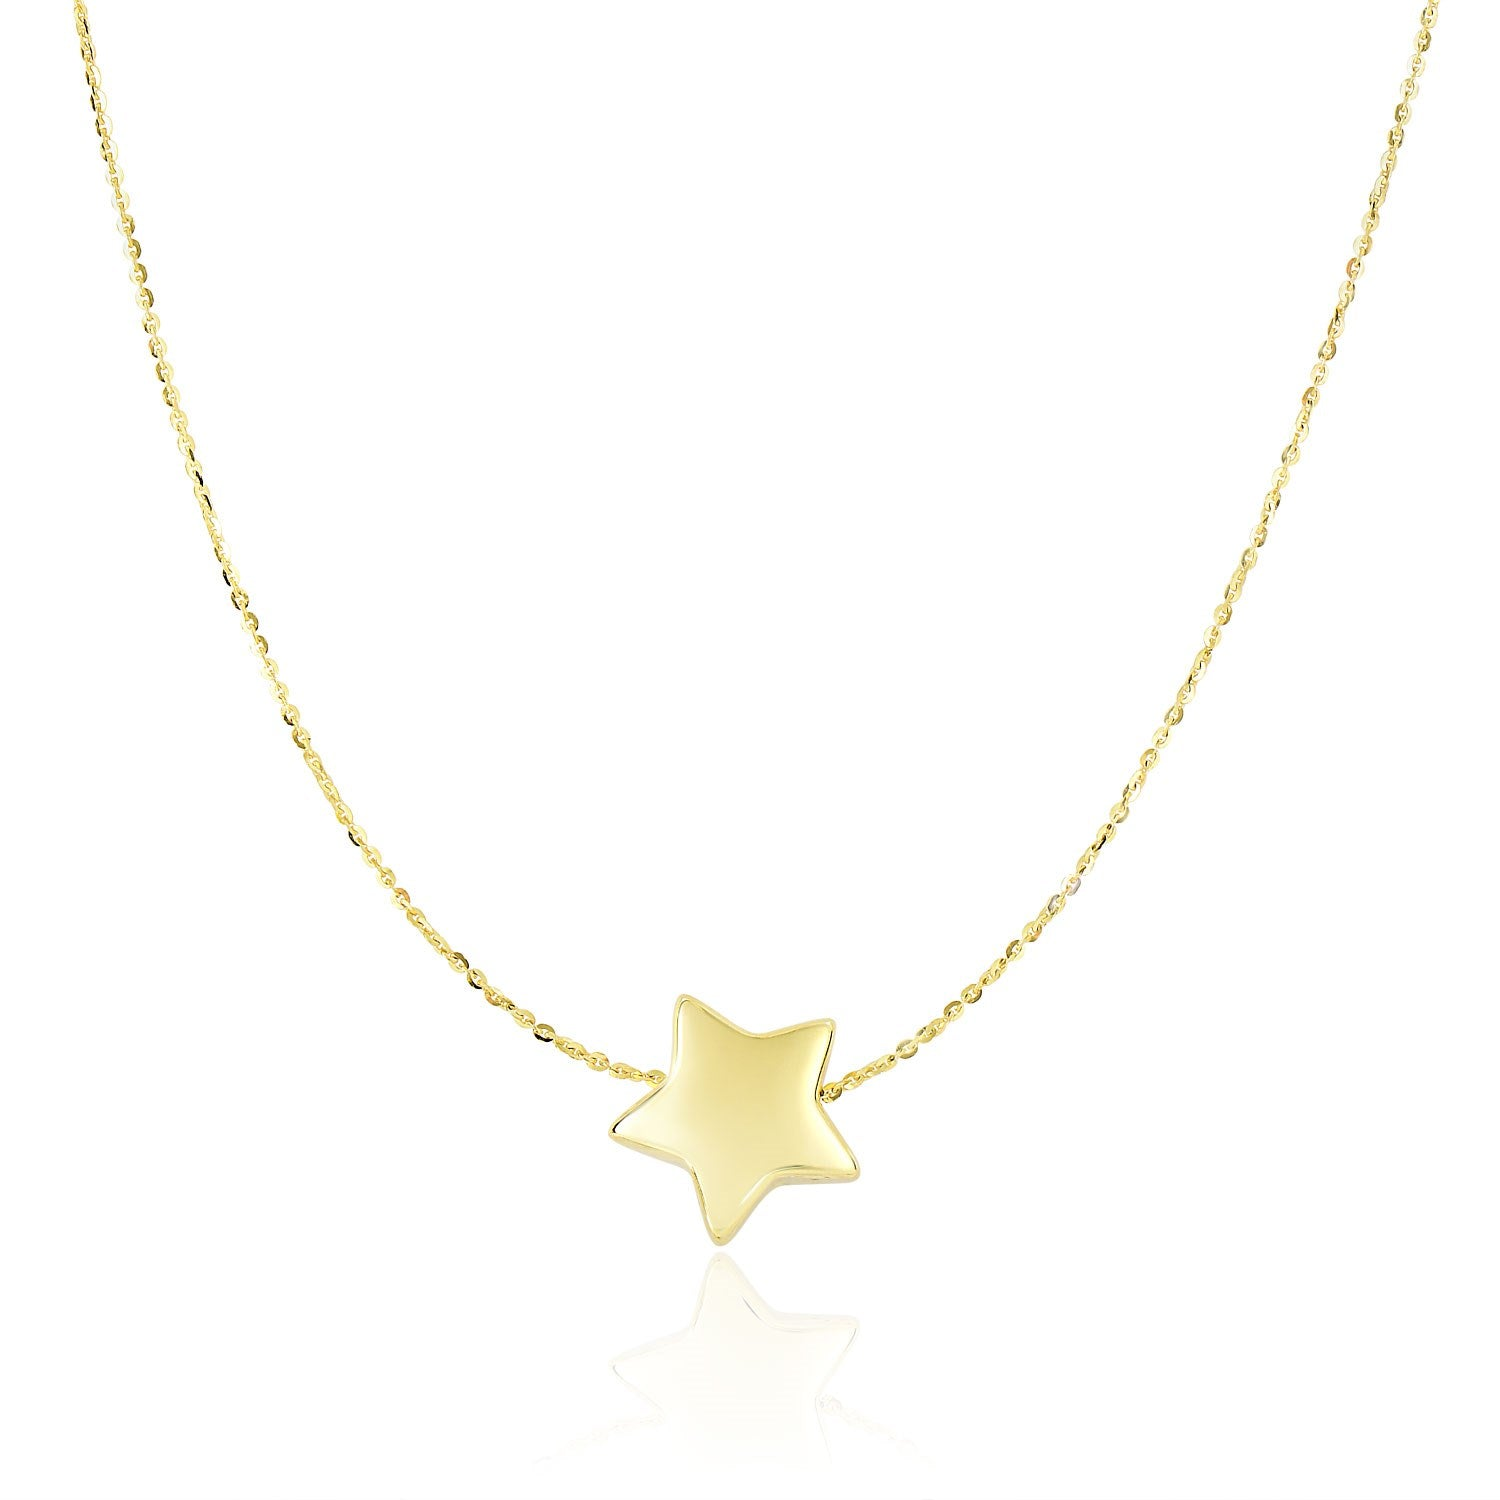 14K Yellow Gold Necklace with Shiny Puffed Sliding Star Charm